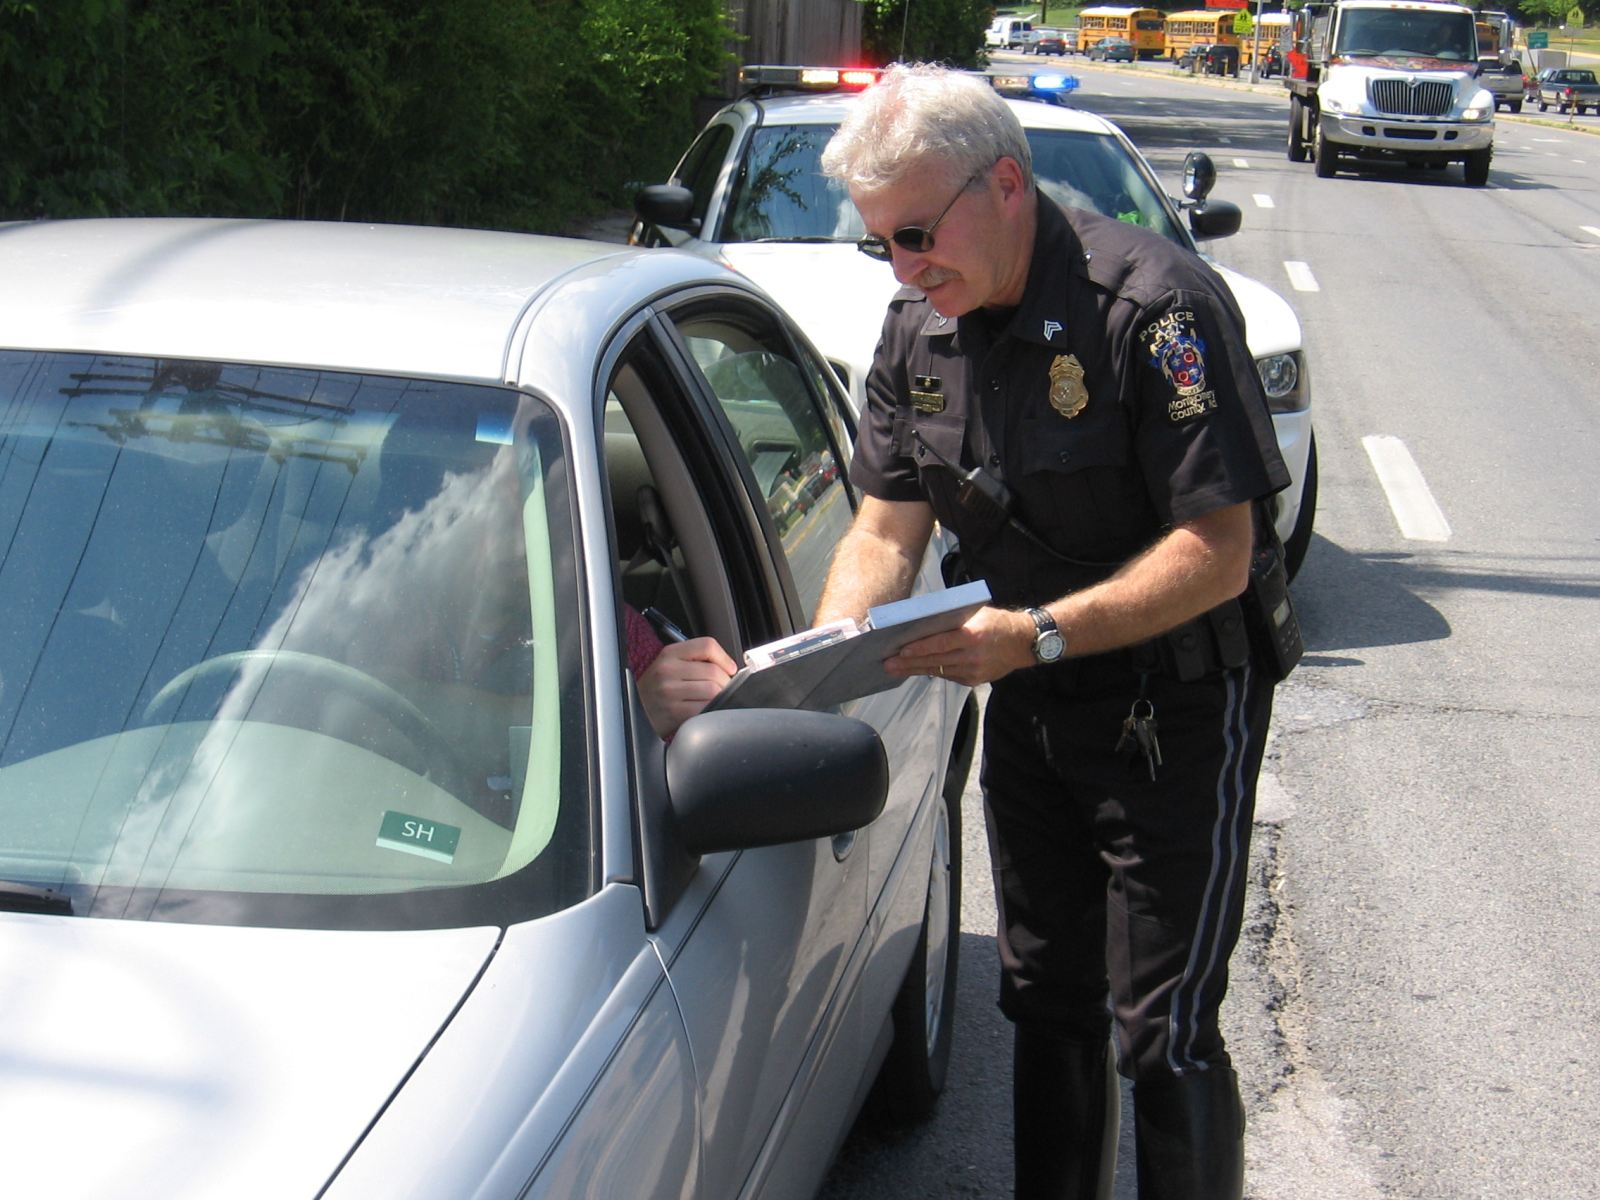 Montgomery County Police are issuing tickets to pedestrians and drivers who break the law